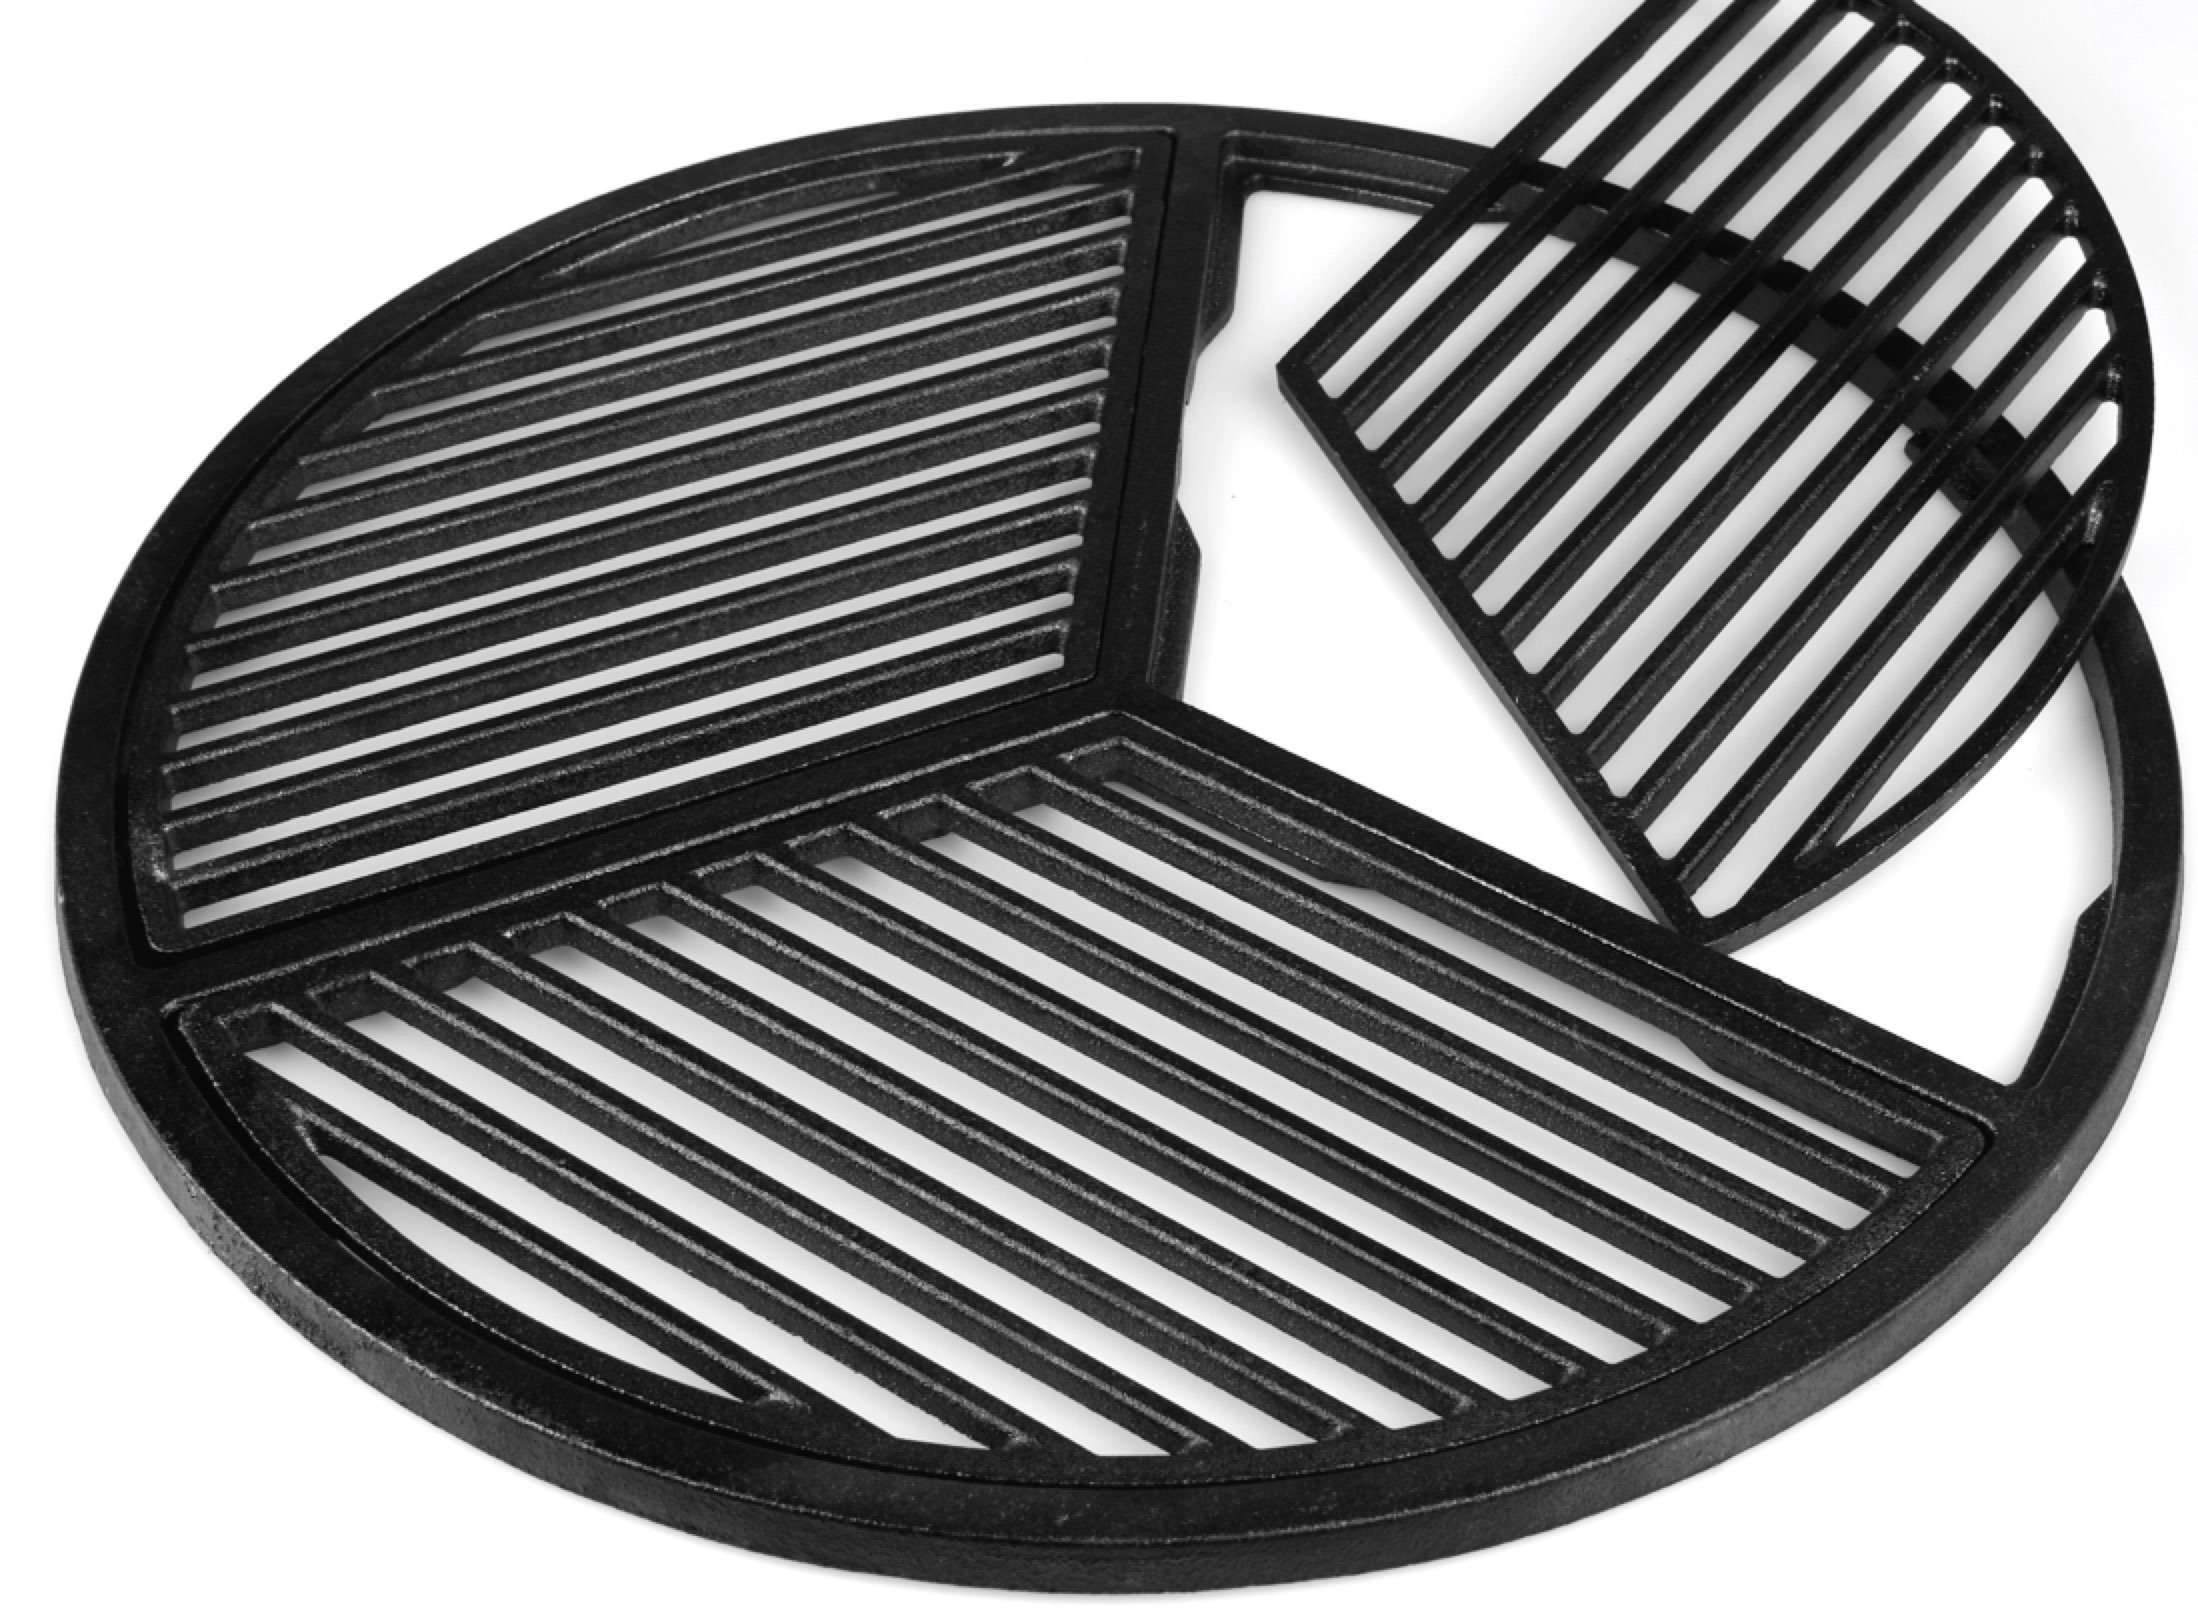 Cast Iron Grate, Pre Seasoned, Modular, Fits 18.5'' Grills and Large Big Green Eggs